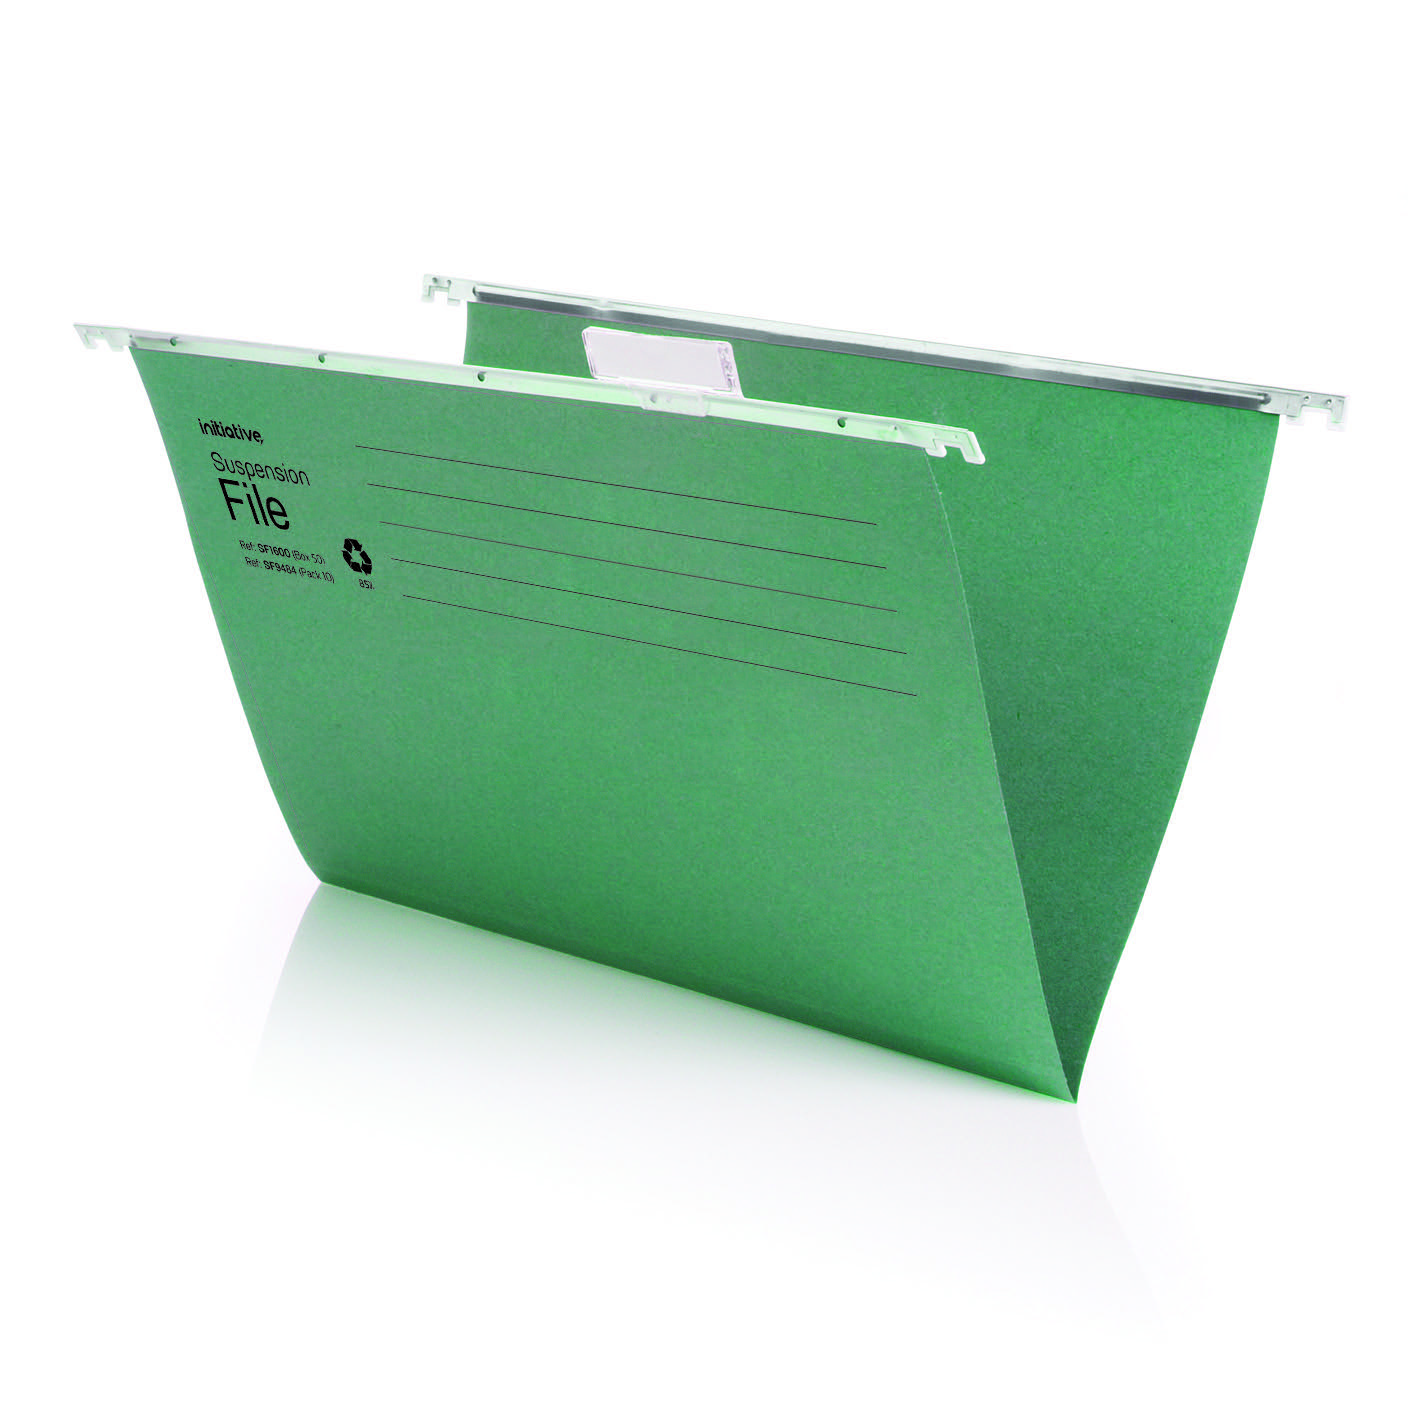 Initiative Suspension File With Tabs and Inserts Foolscap 215gsm Pack 50 Recycled